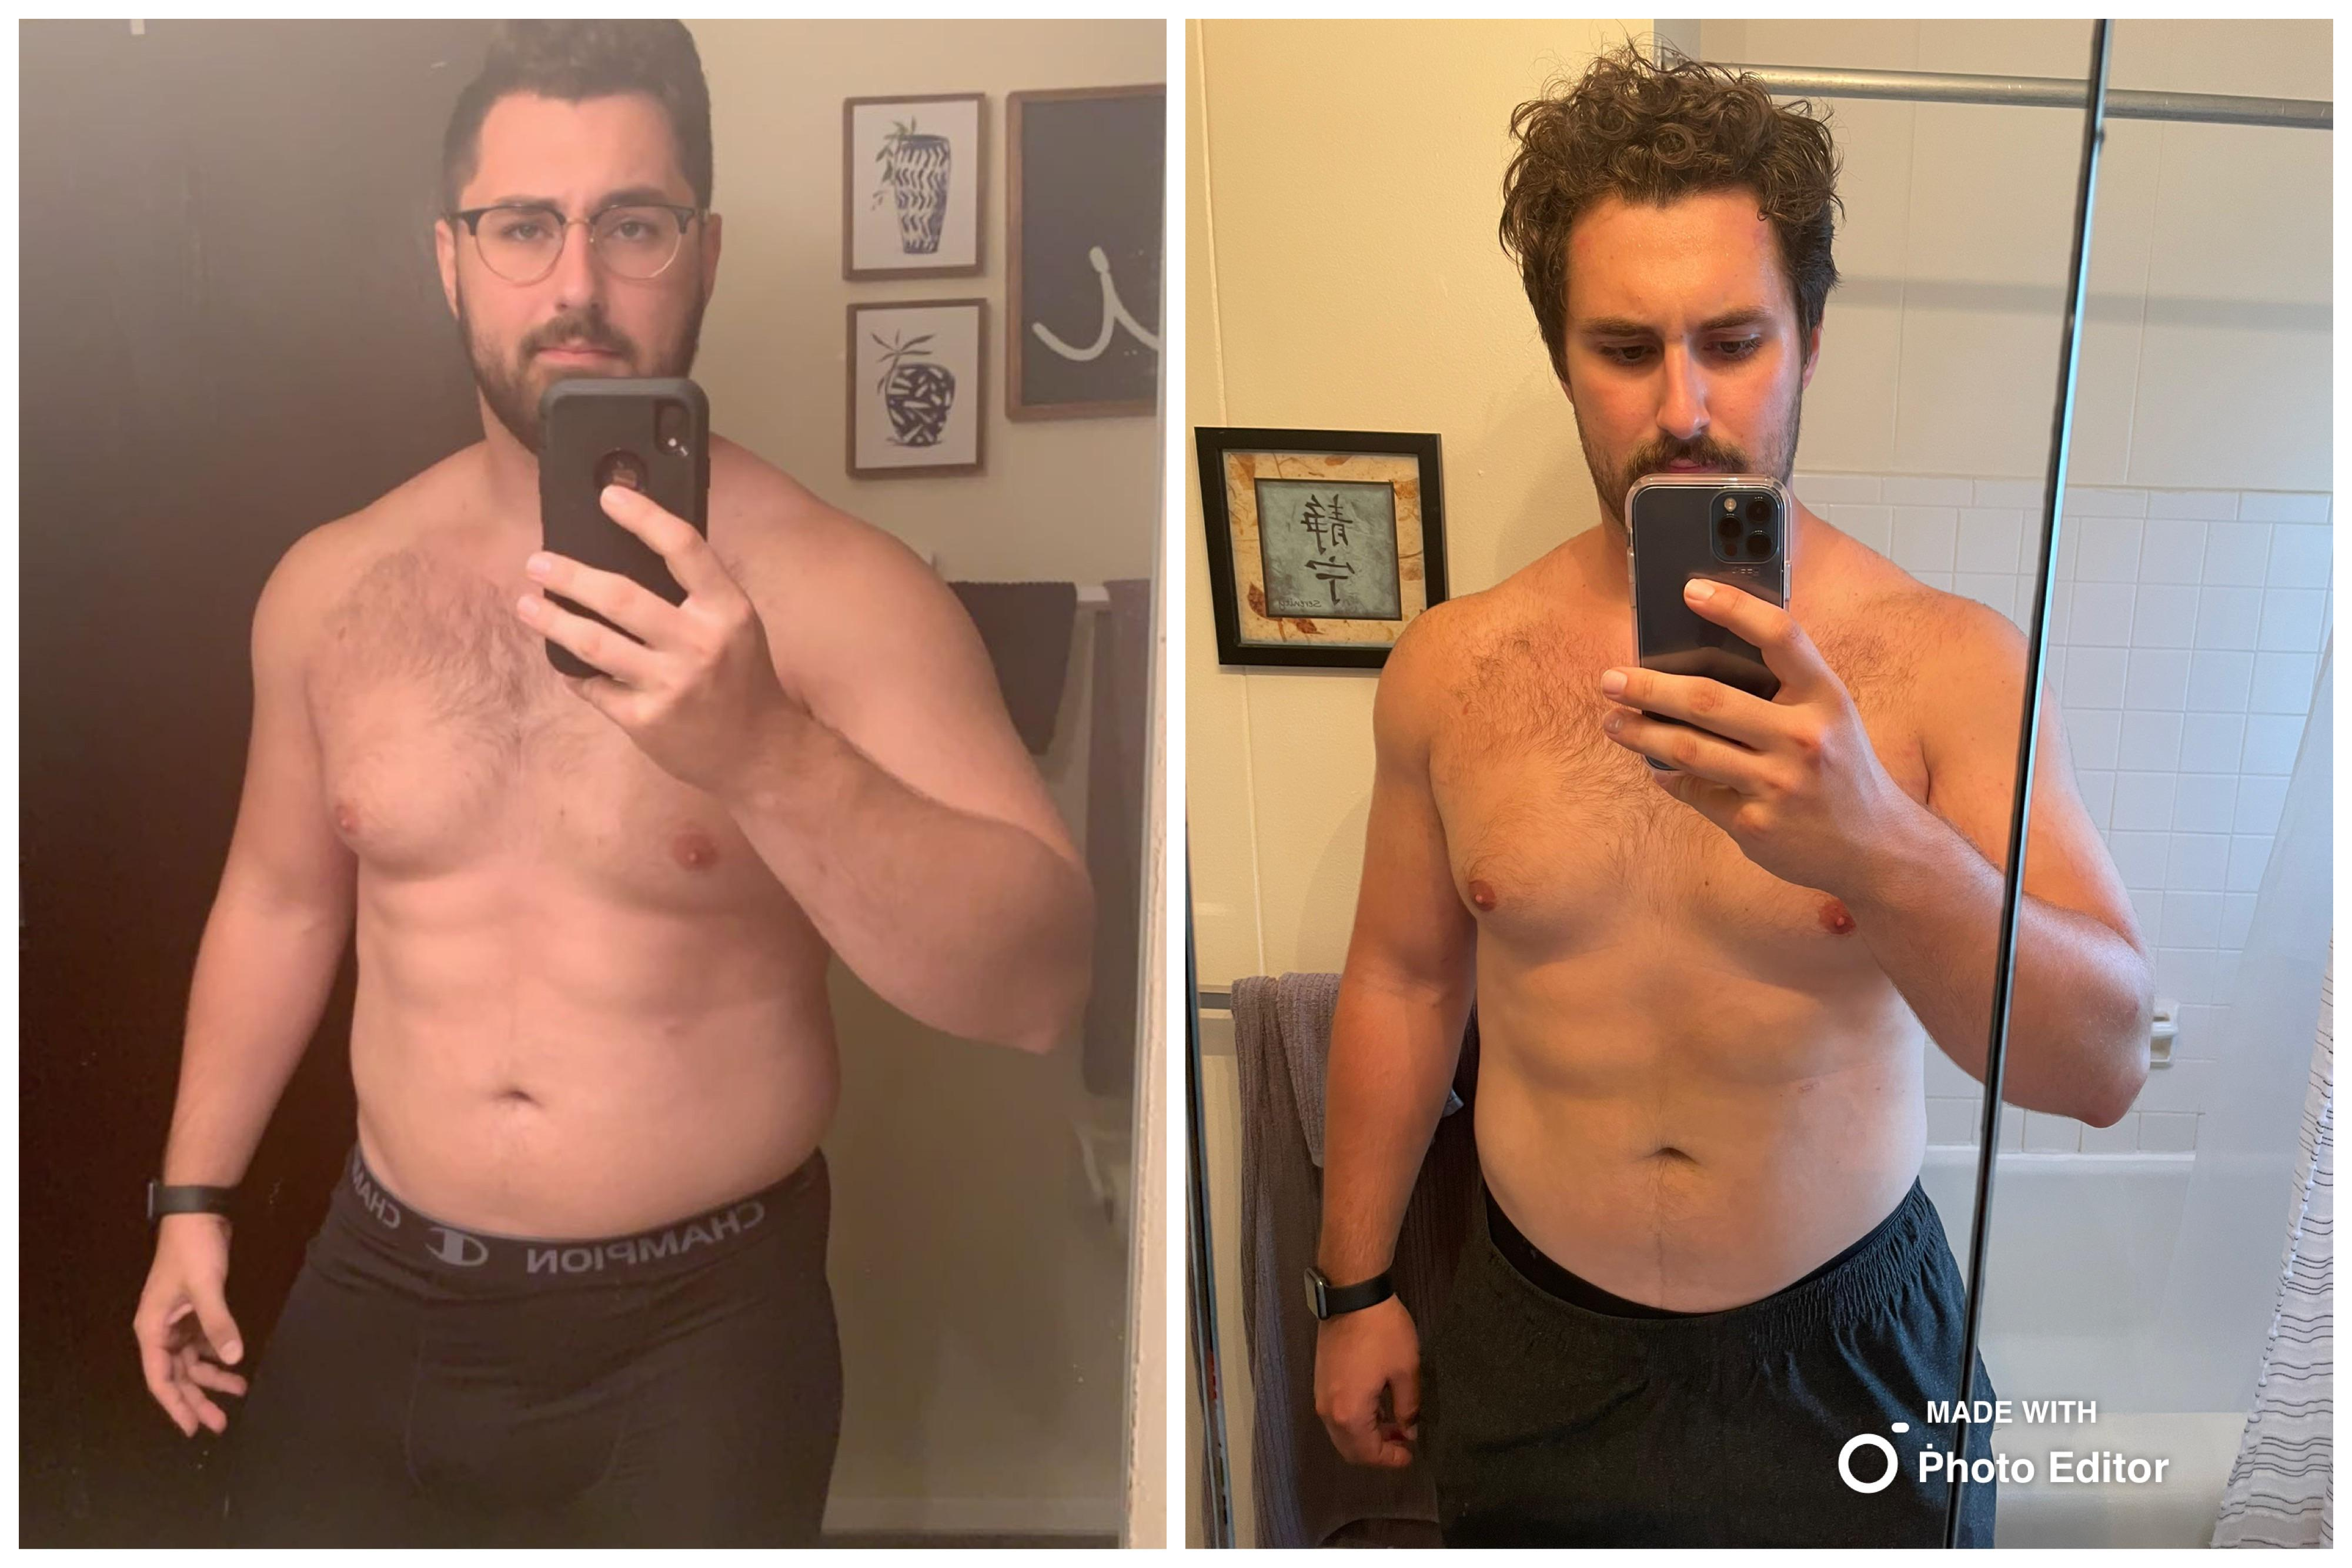 6 foot 1 Male Before and After 32 lbs Weight Loss 285 lbs to 253 lbs